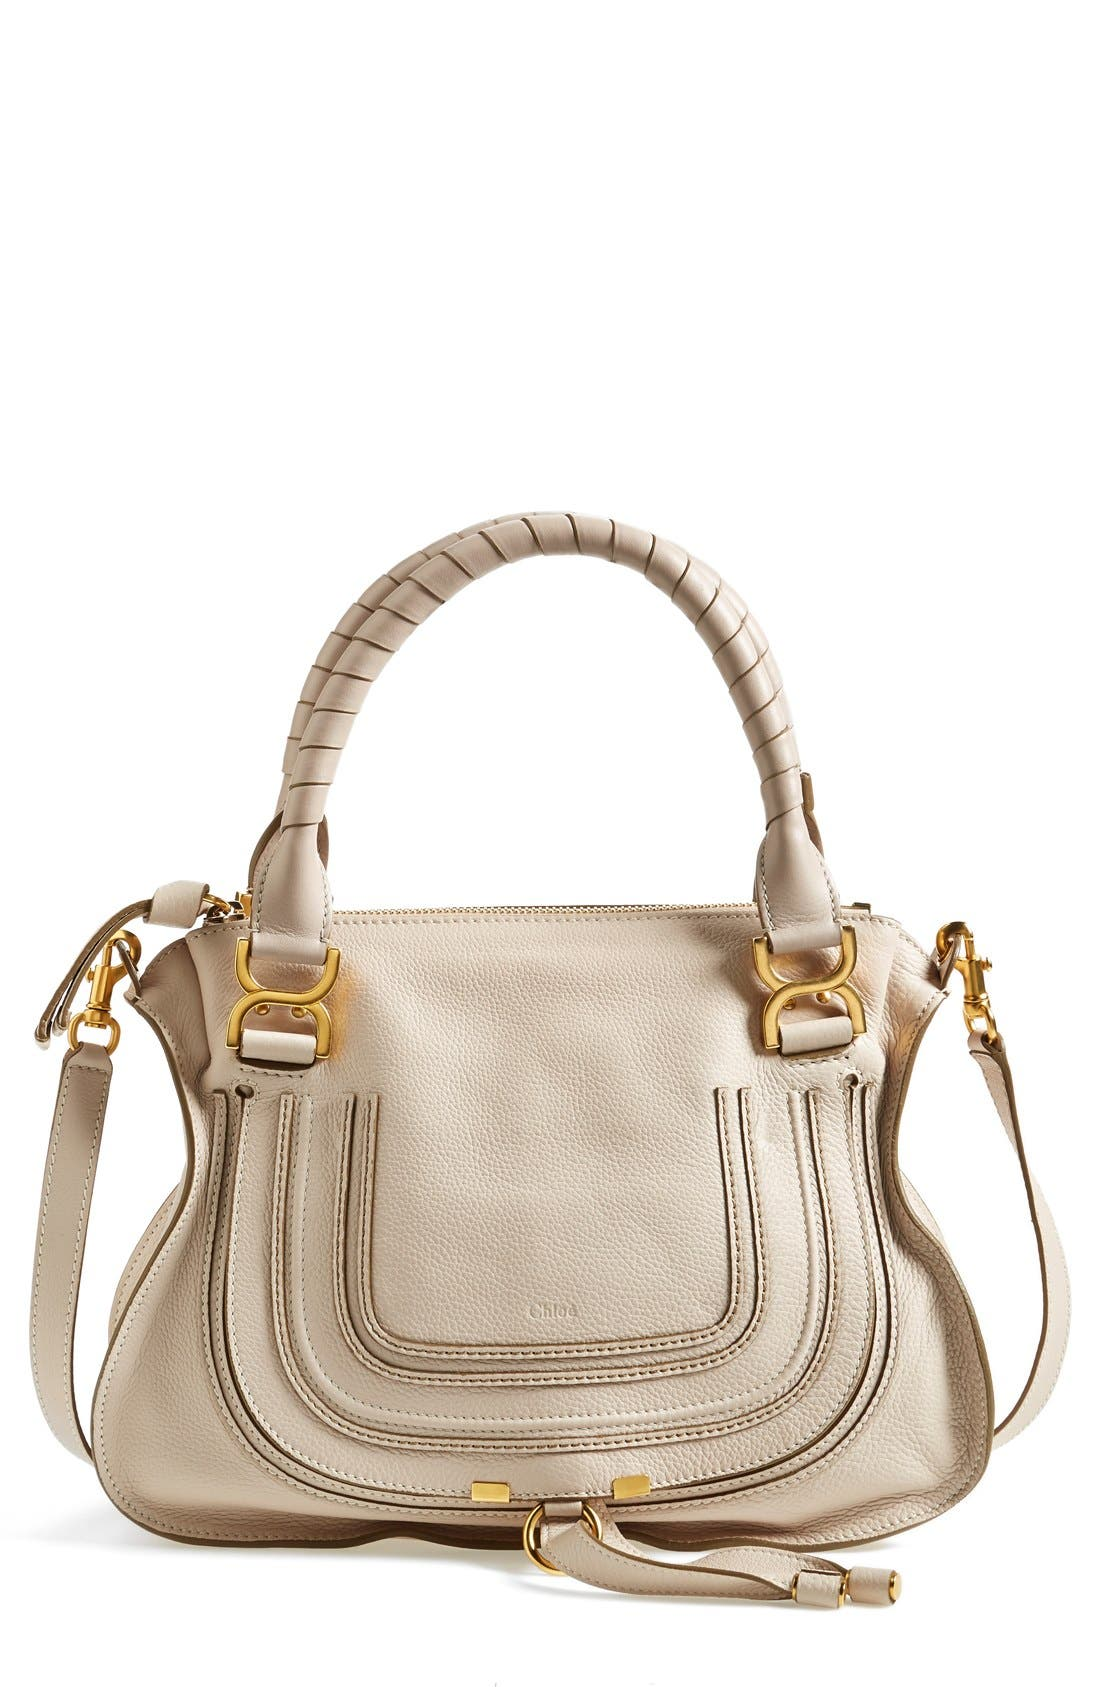 Main Image - Chloé 'Medium Marcie' Leather Satchel